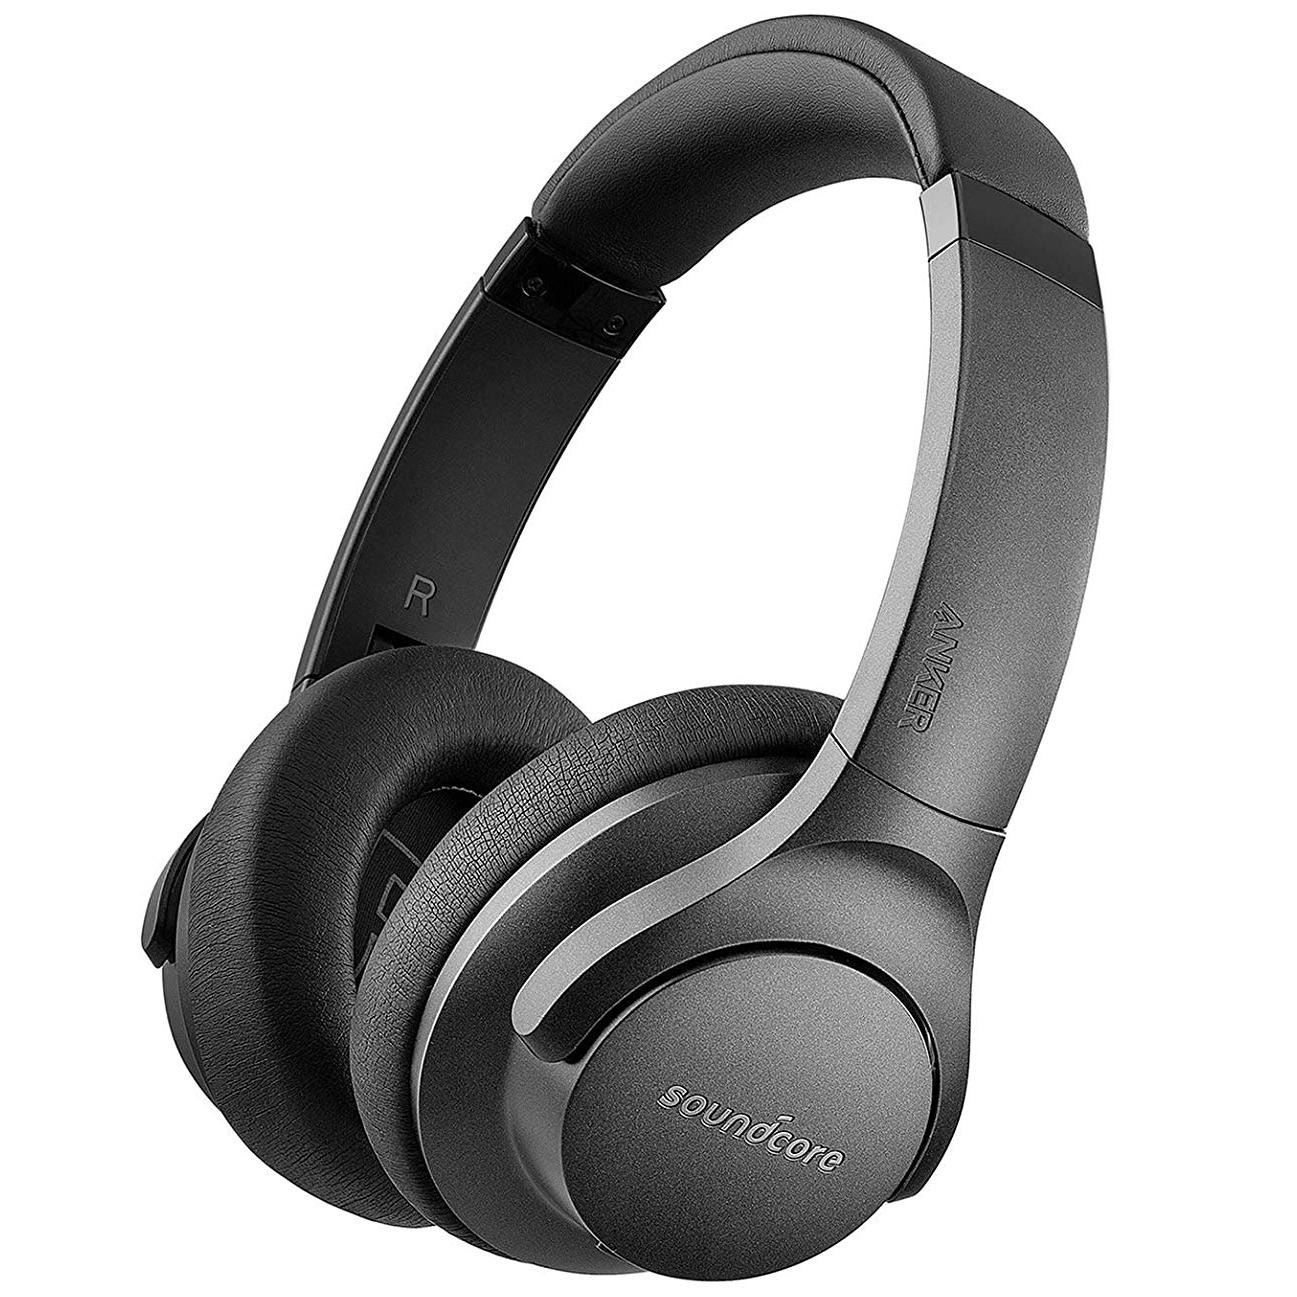 Soundcore Life 2 Active Noise Cancelling Over-Ear Headphones